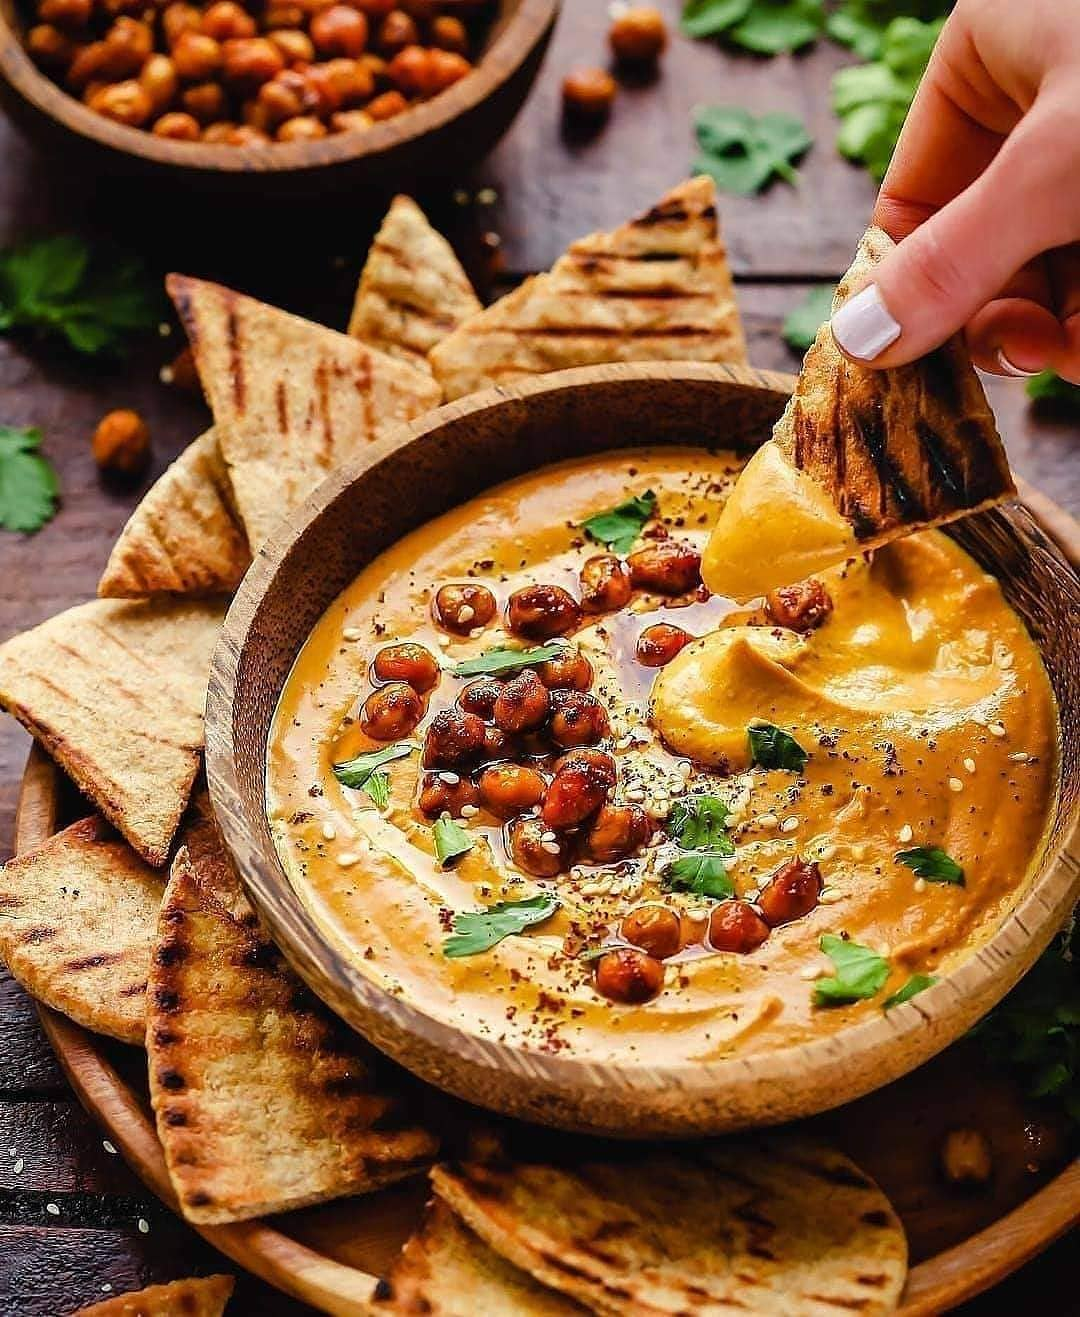 creamy golden hummus  hummus was an acquired taste for display image  fe2203a5